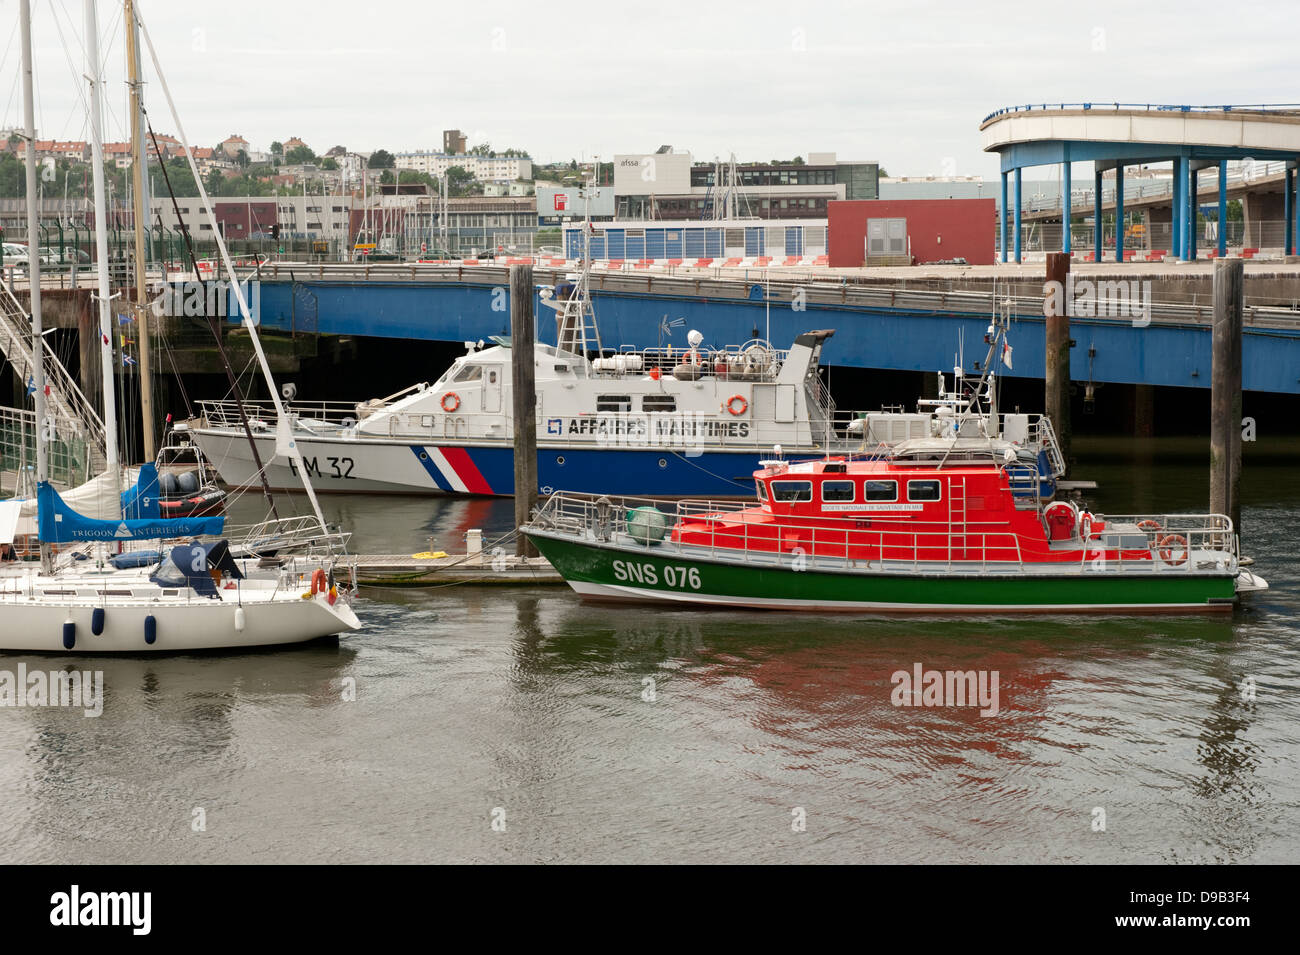 Maritime Fisheries Protection Vessel Boulogne-sur-Mer France Europe - Stock Image